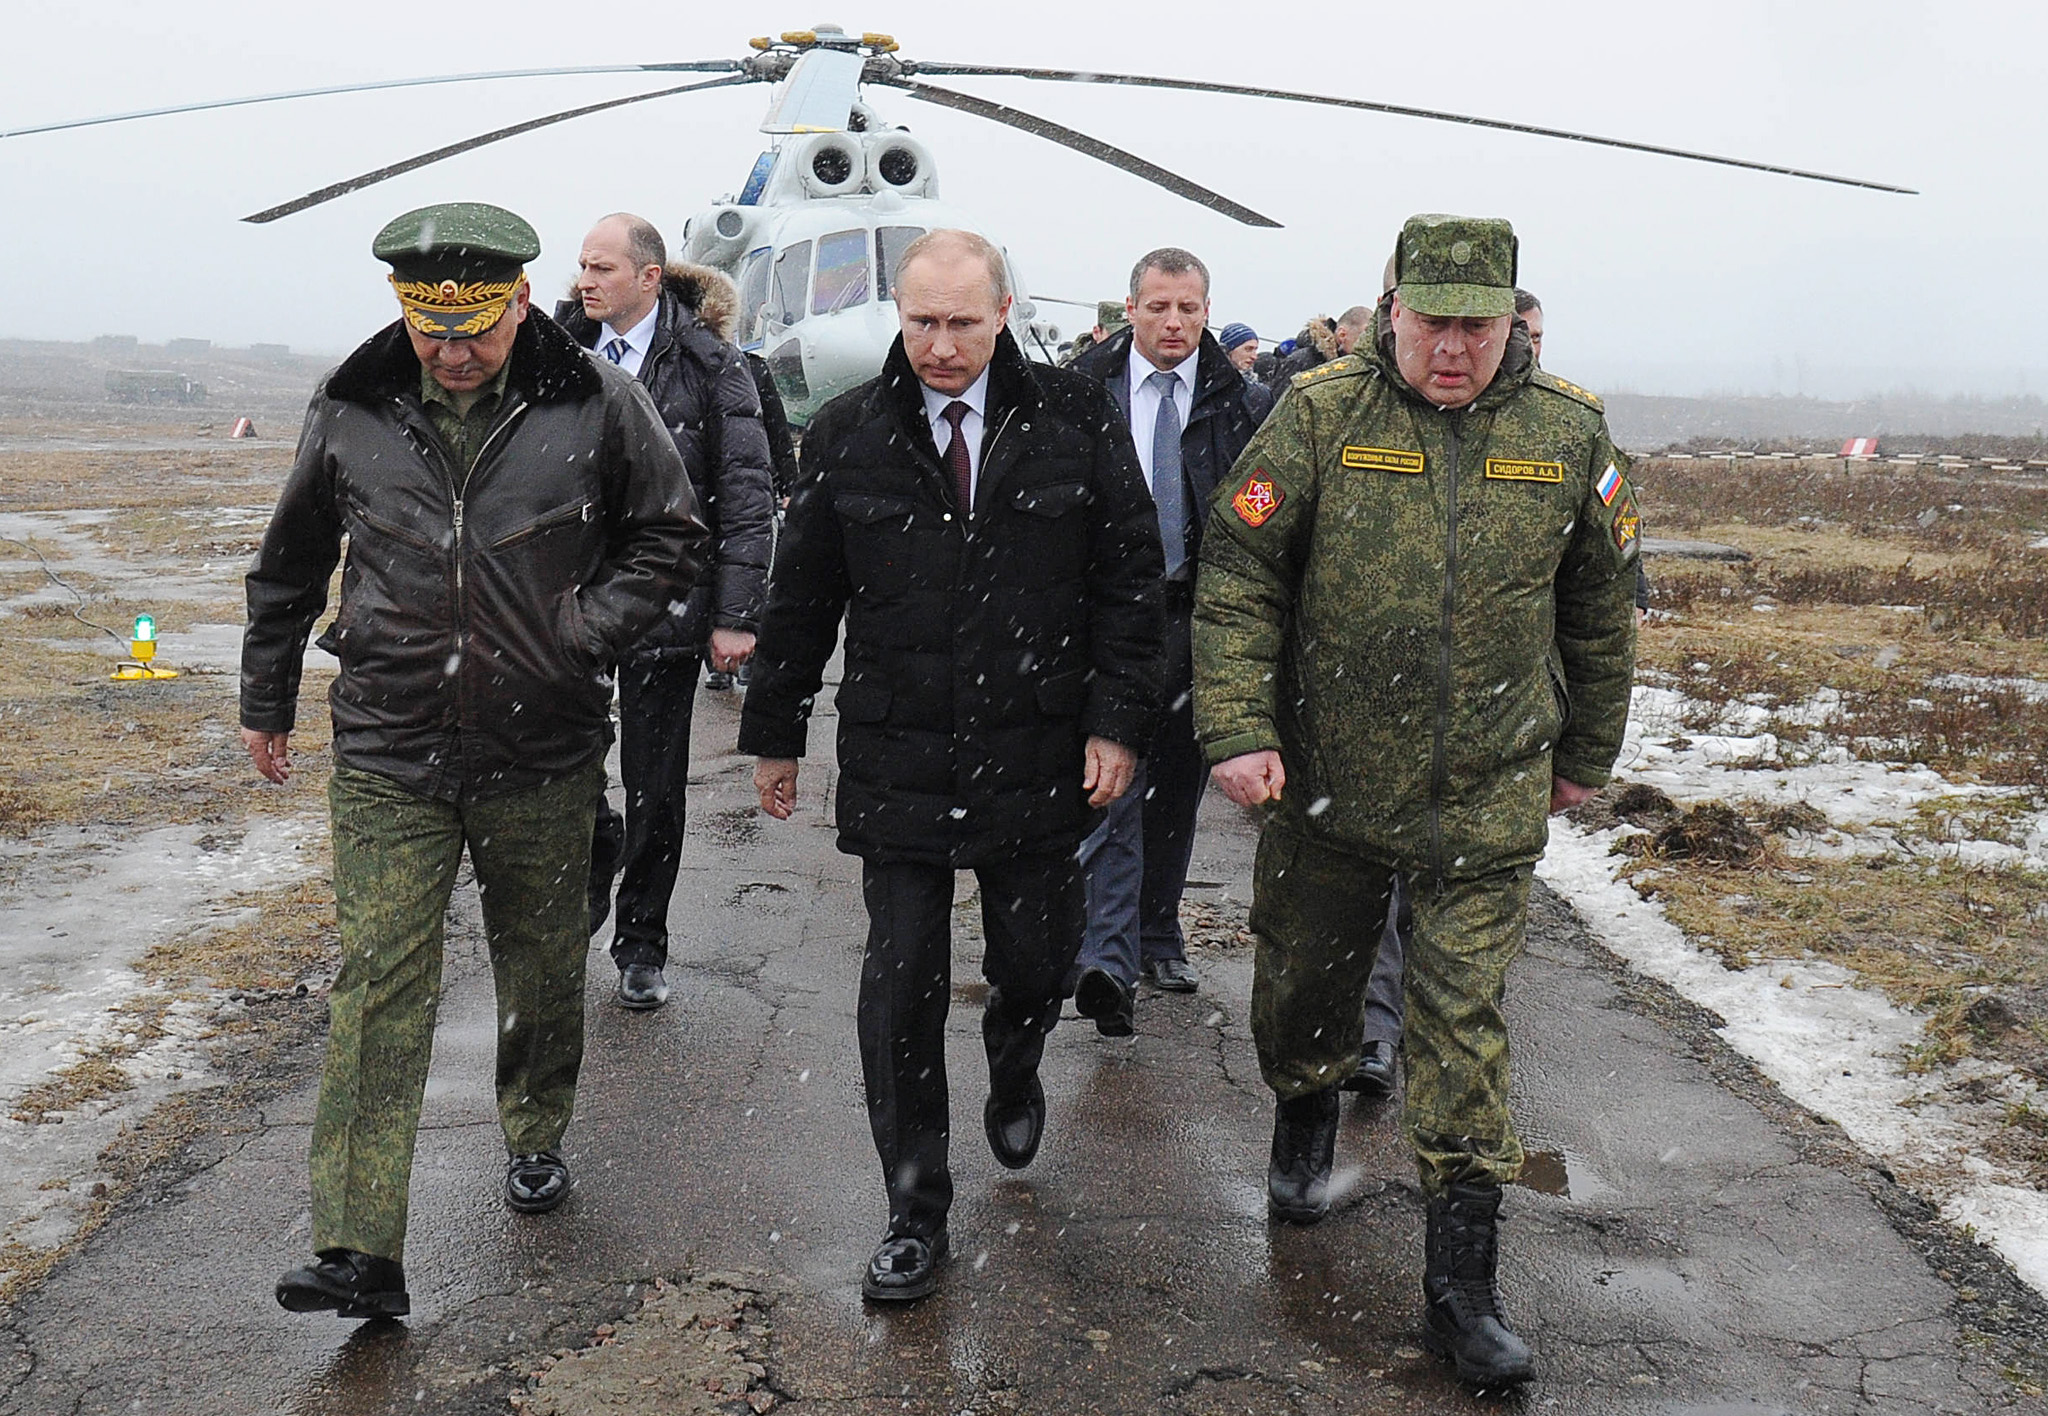 Vladimir Putin, Sergei Shoigu, Anatoly Sidorov...Russian President Vladimir Putin, center, and Defense Minister Sergei Shoigu, left, and the commander of the Western Military District Anatoly Sidorov, right, walk upon arrival to watch military exercise near St.Petersburg, Russia, Monday, March 3, 2014. Putin has sought and quickly got the Russian parliament's permission to use the Russian military in Ukraine.